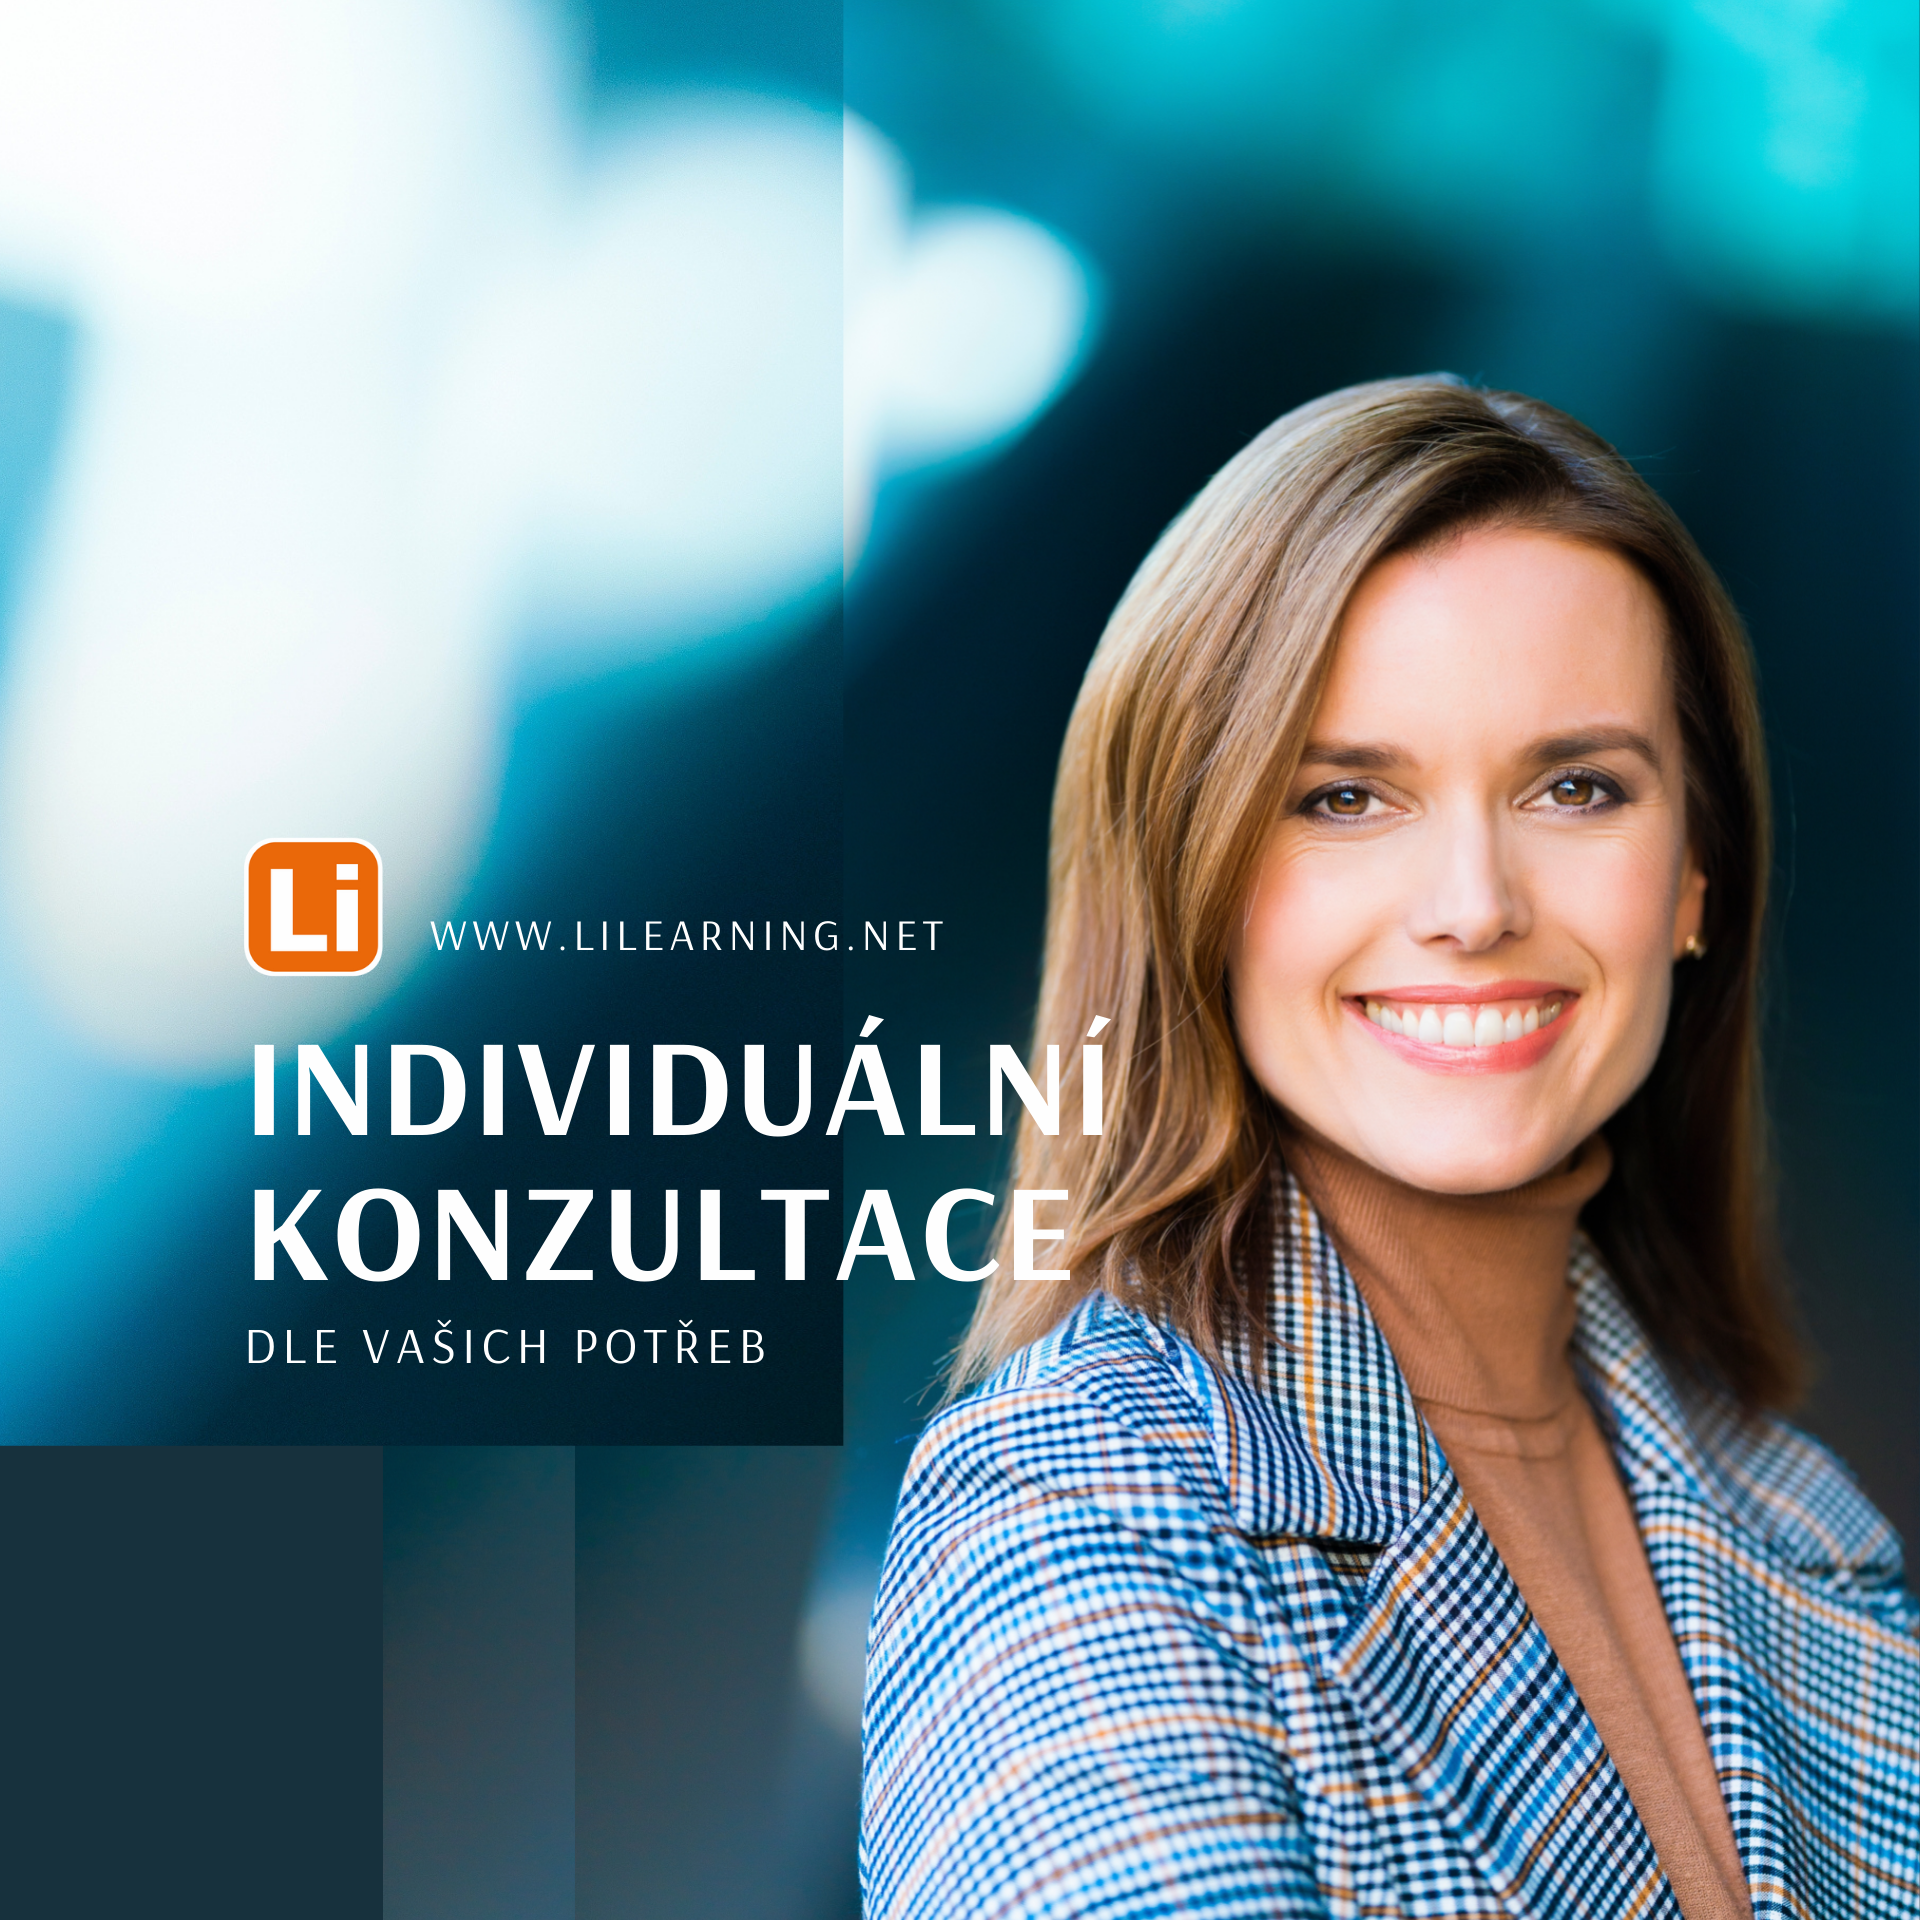 1-to-1 KONZULTACE